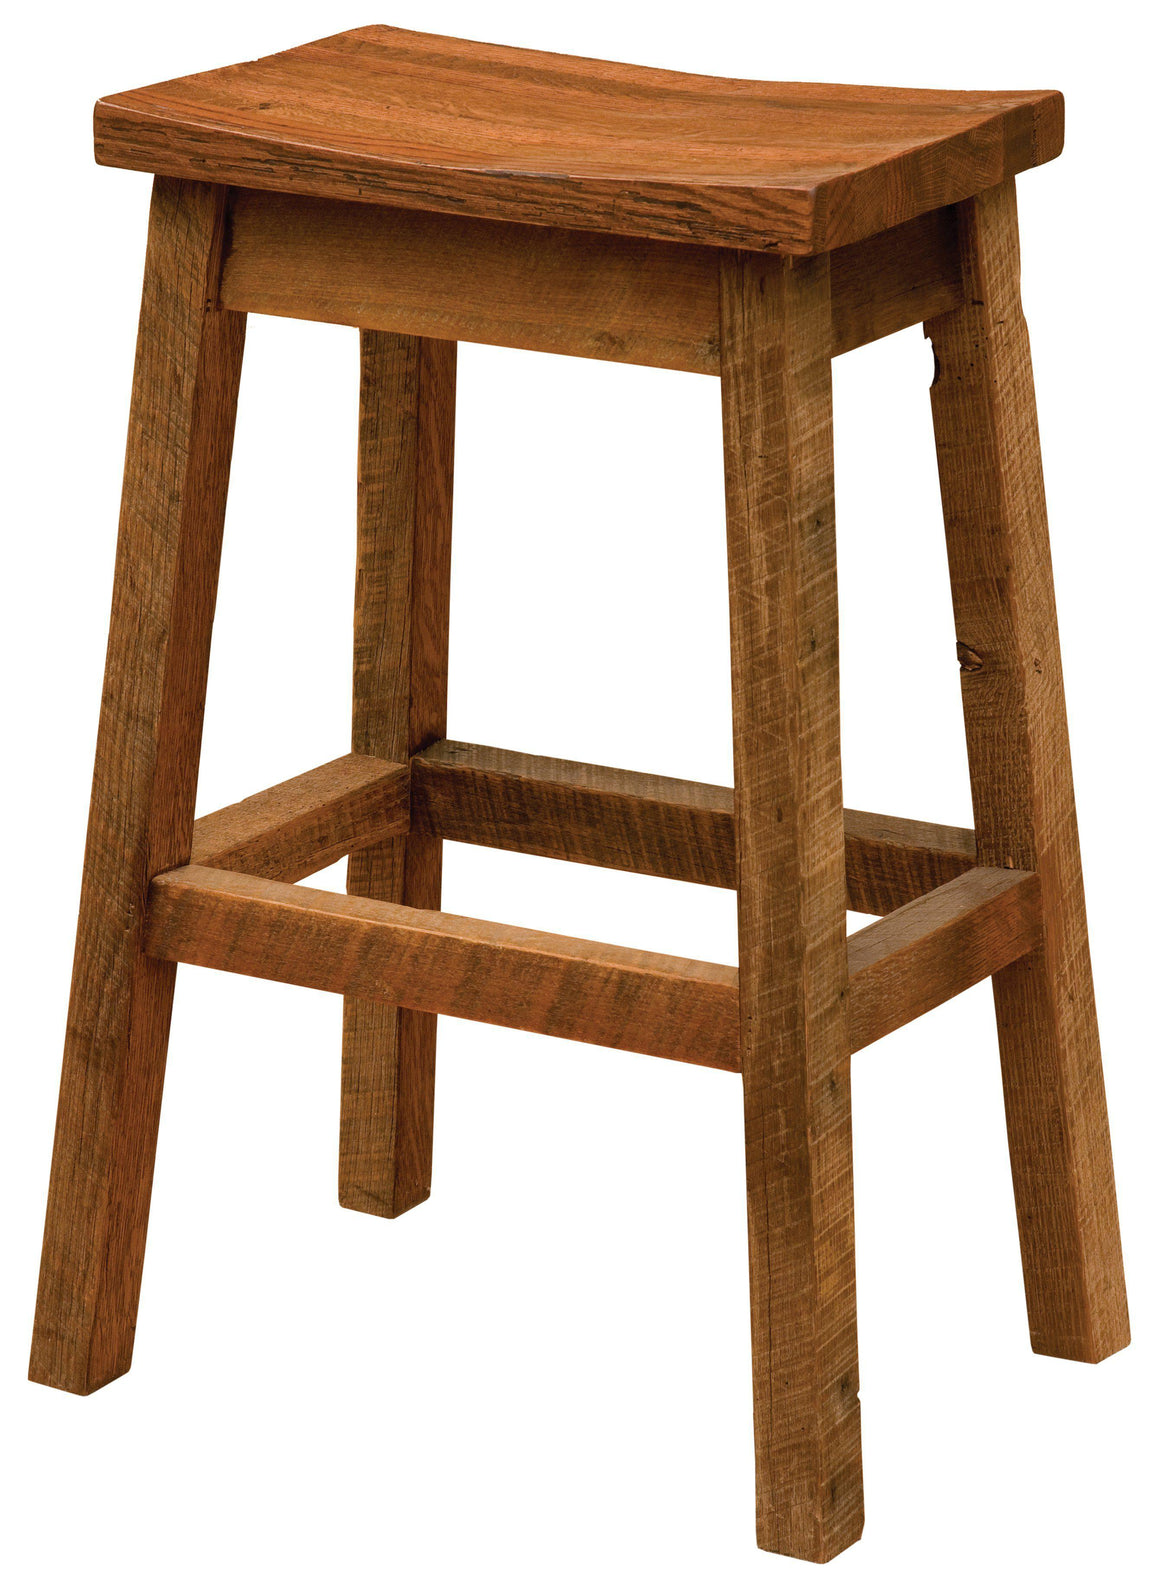 Barnwood Saddle Stool - Contoured Seat - Antique Oak Finish - Rustic Deco Incorporated